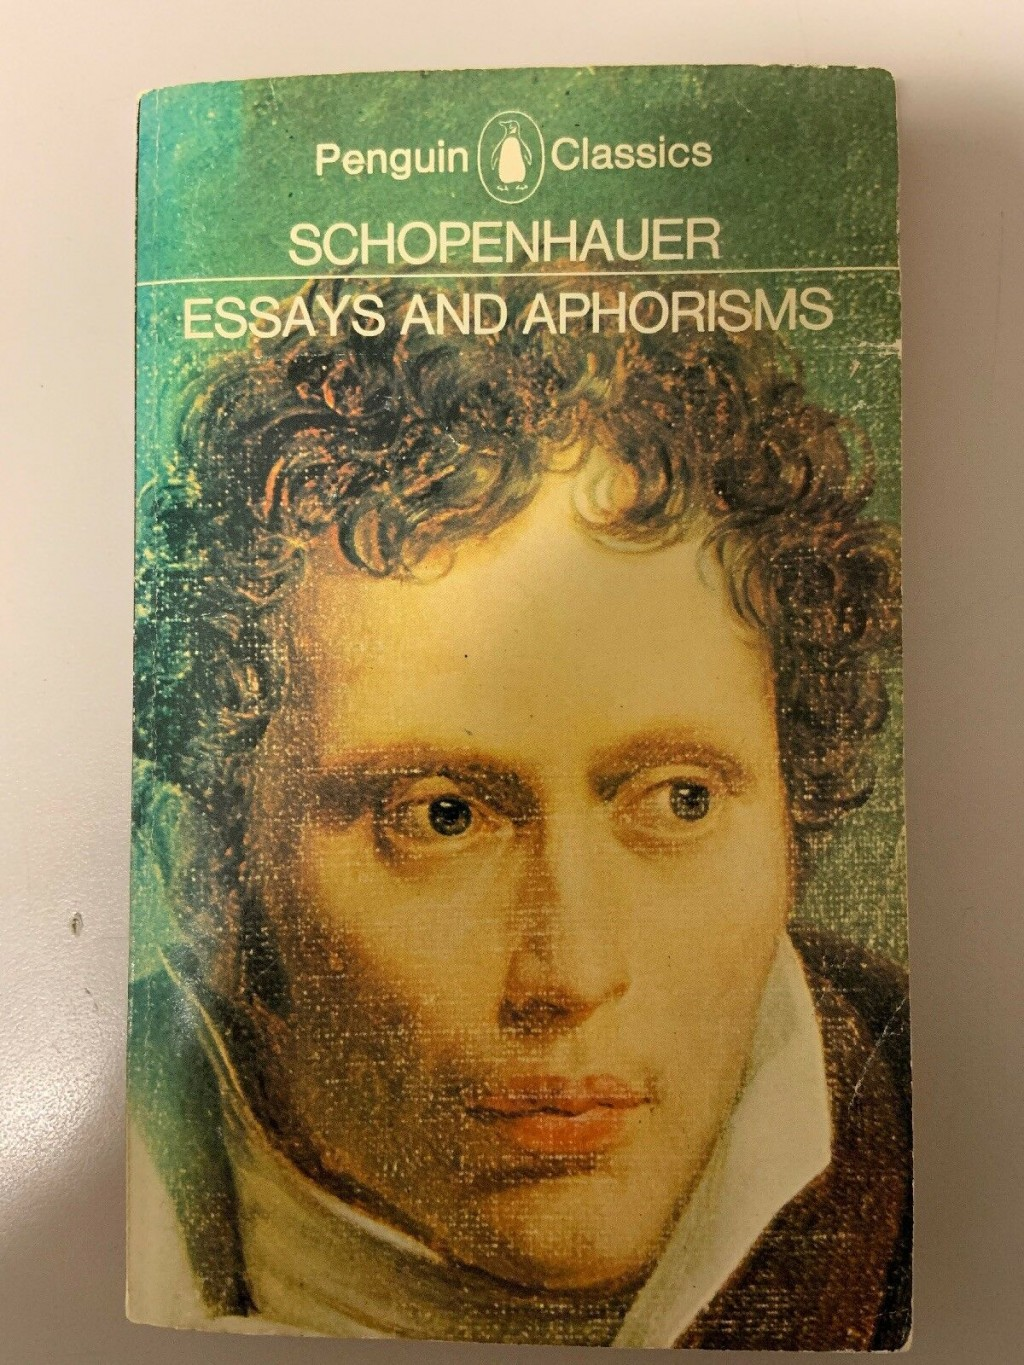 006 S L1600 Essays And Aphorisms Essay Frightening Schopenhauer Pdf Wiki By Arthur Large